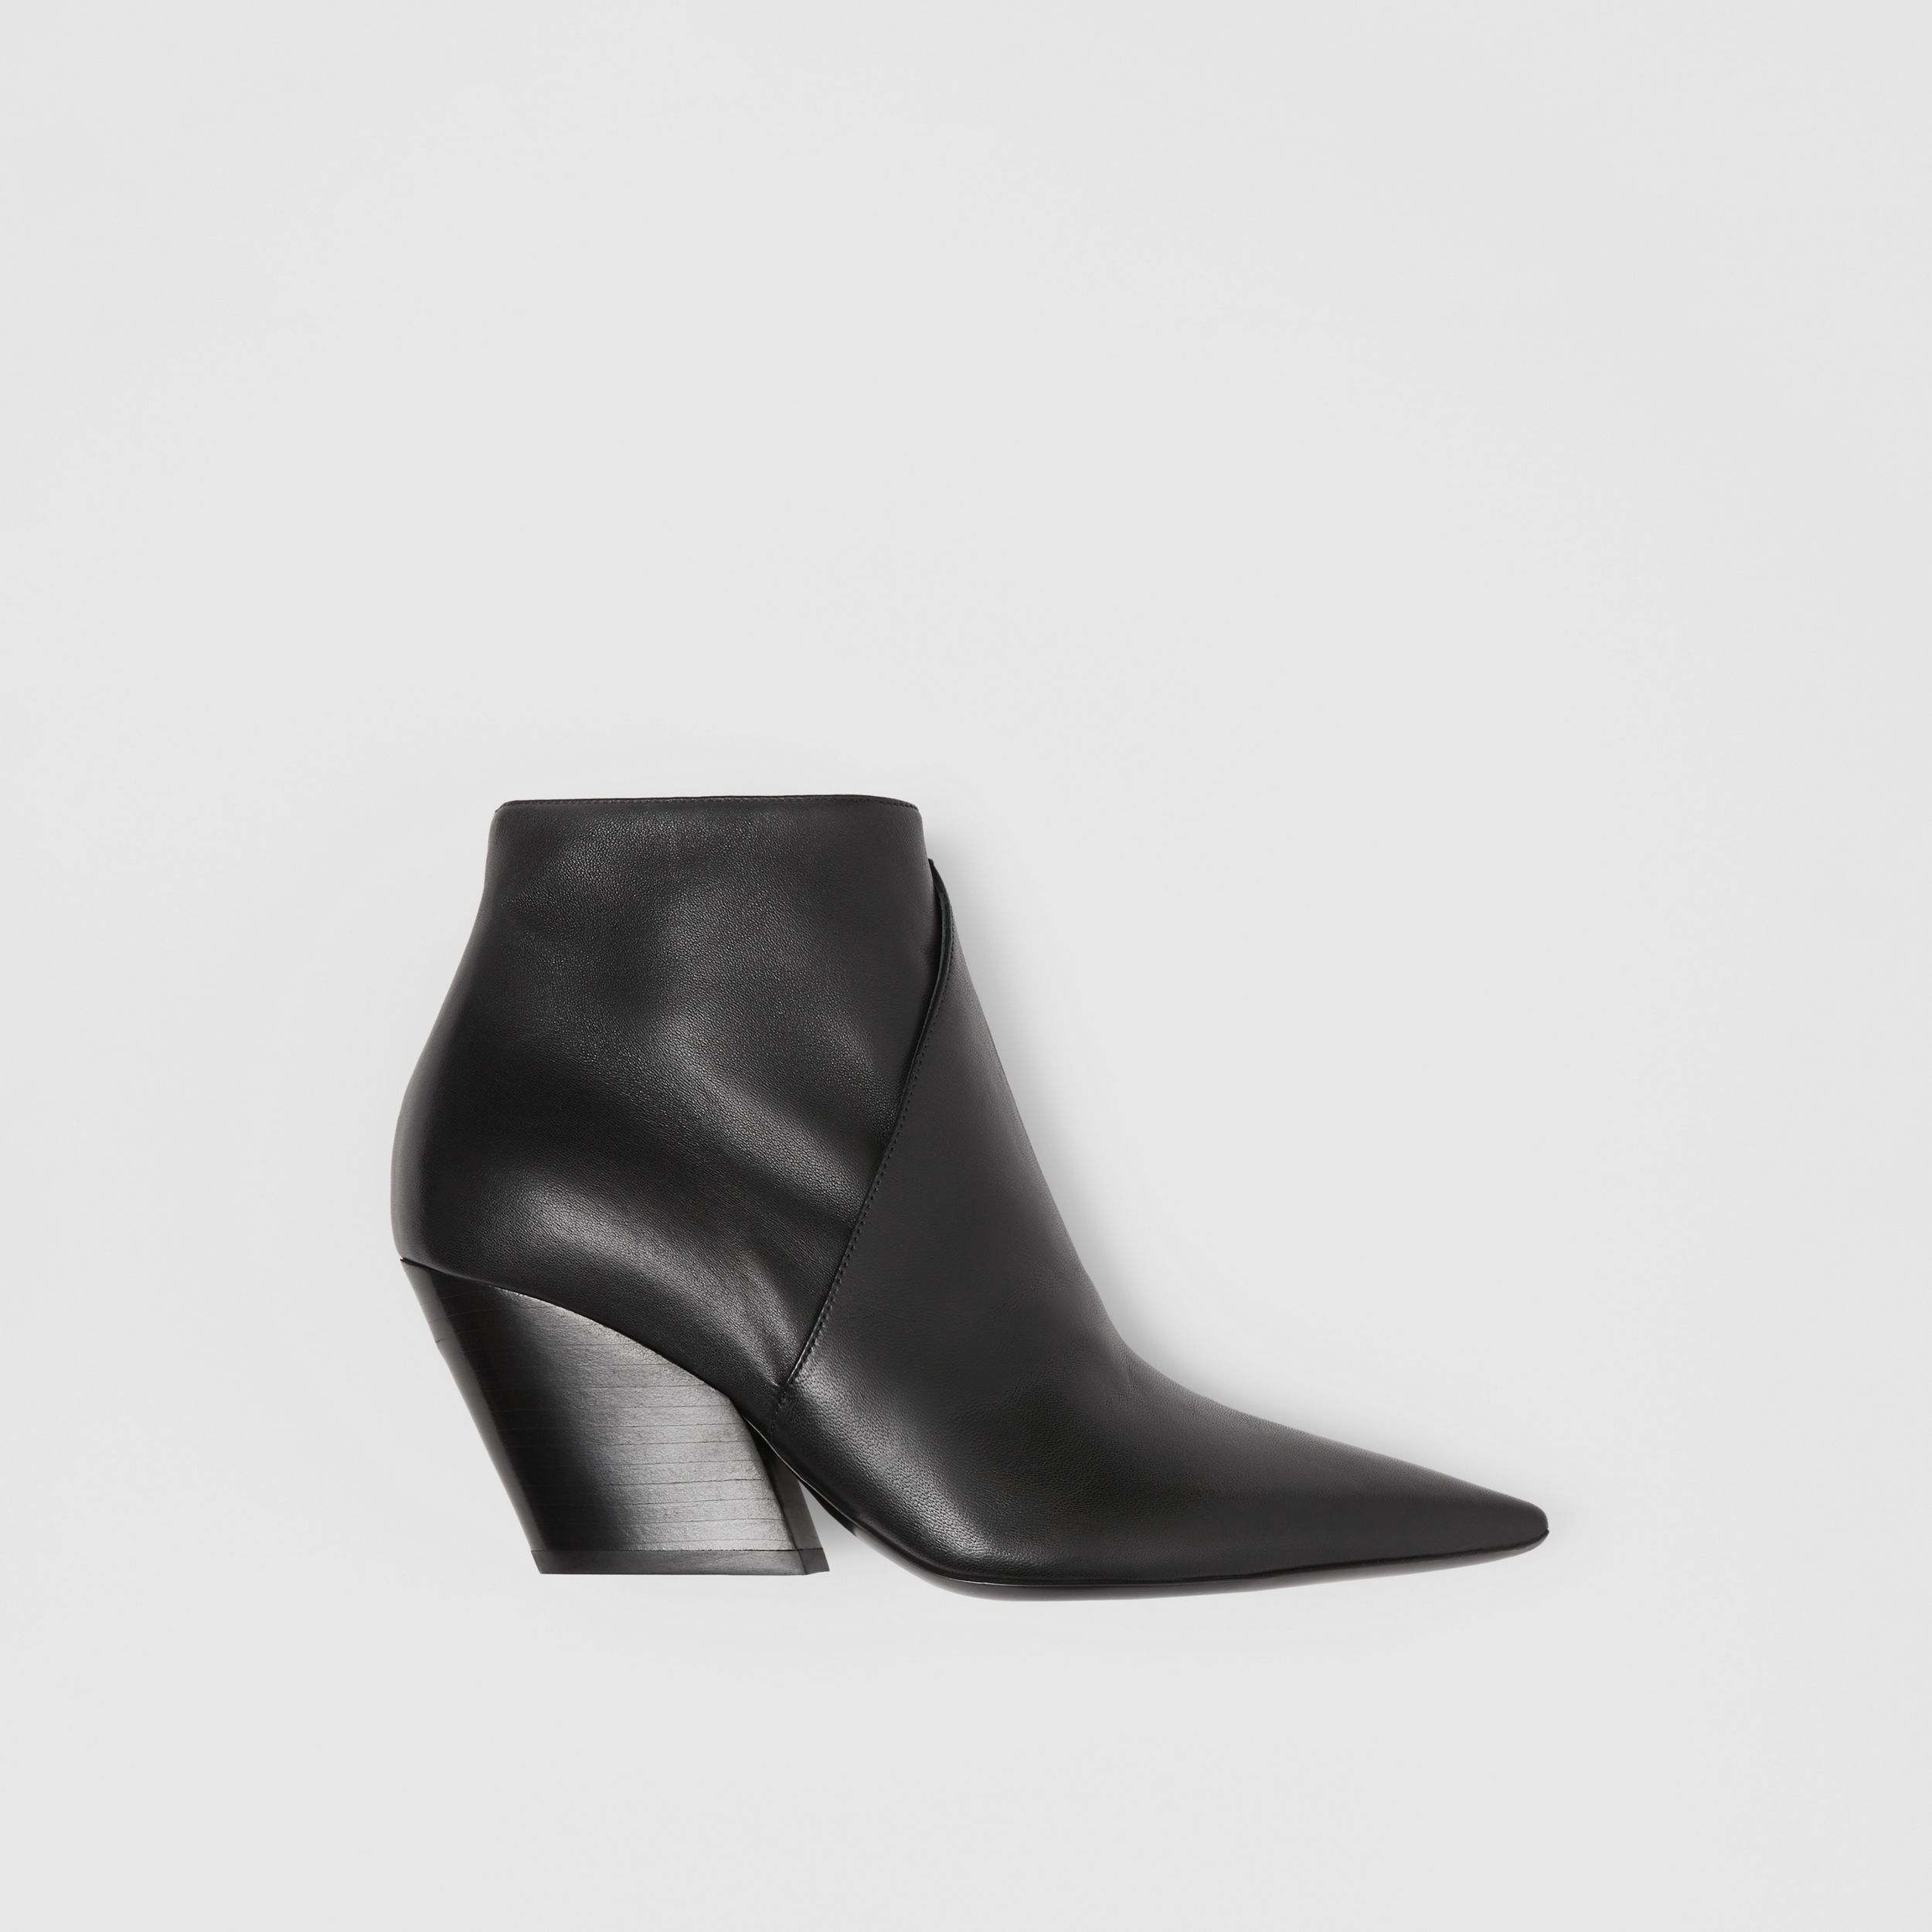 Leather Ankle Boots in Black - Women | Burberry Hong Kong S.A.R. - 1